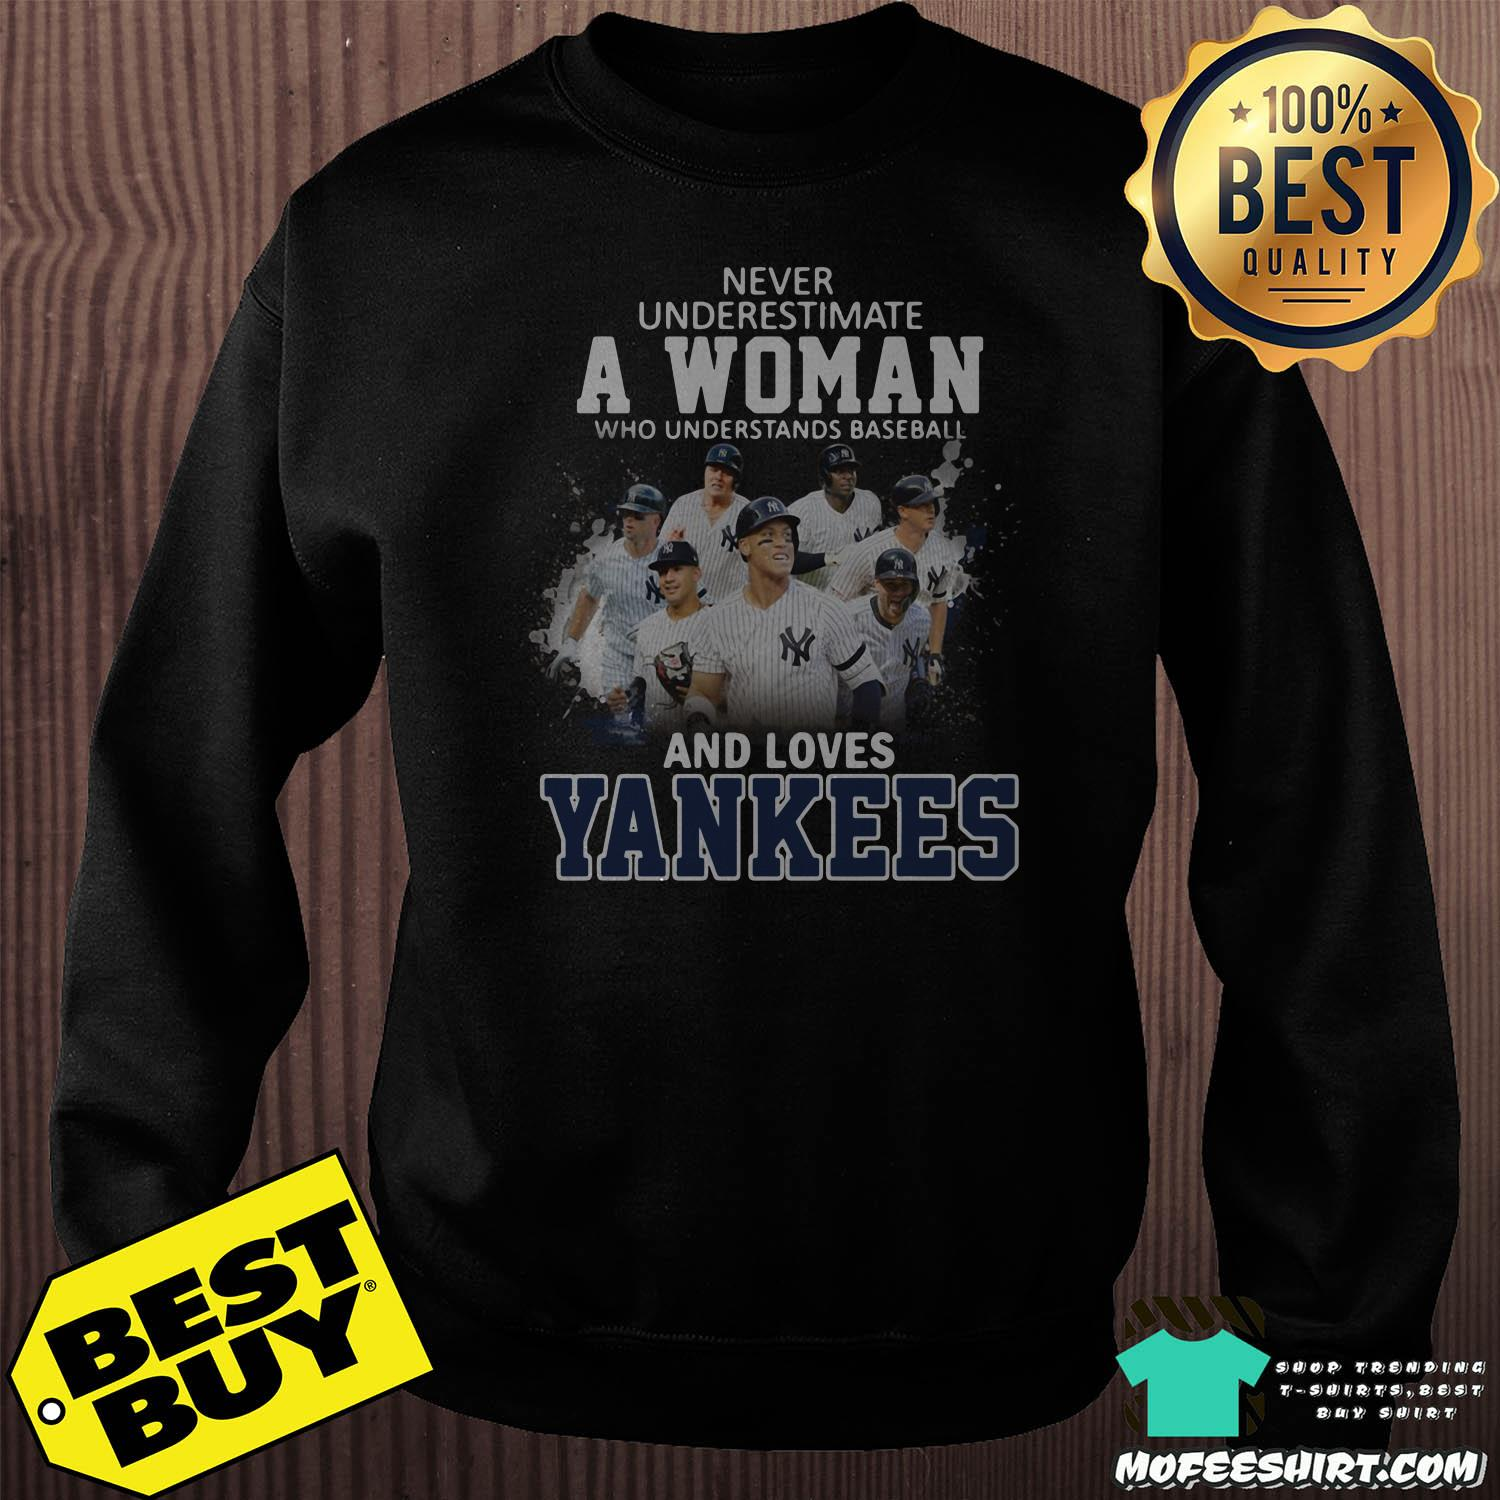 never underestimate a woman who understands baseball and loves new york yankees sweatshirt - Never Underestimate A Woman Who Understands Baseball And Loves New York Yankees shirt